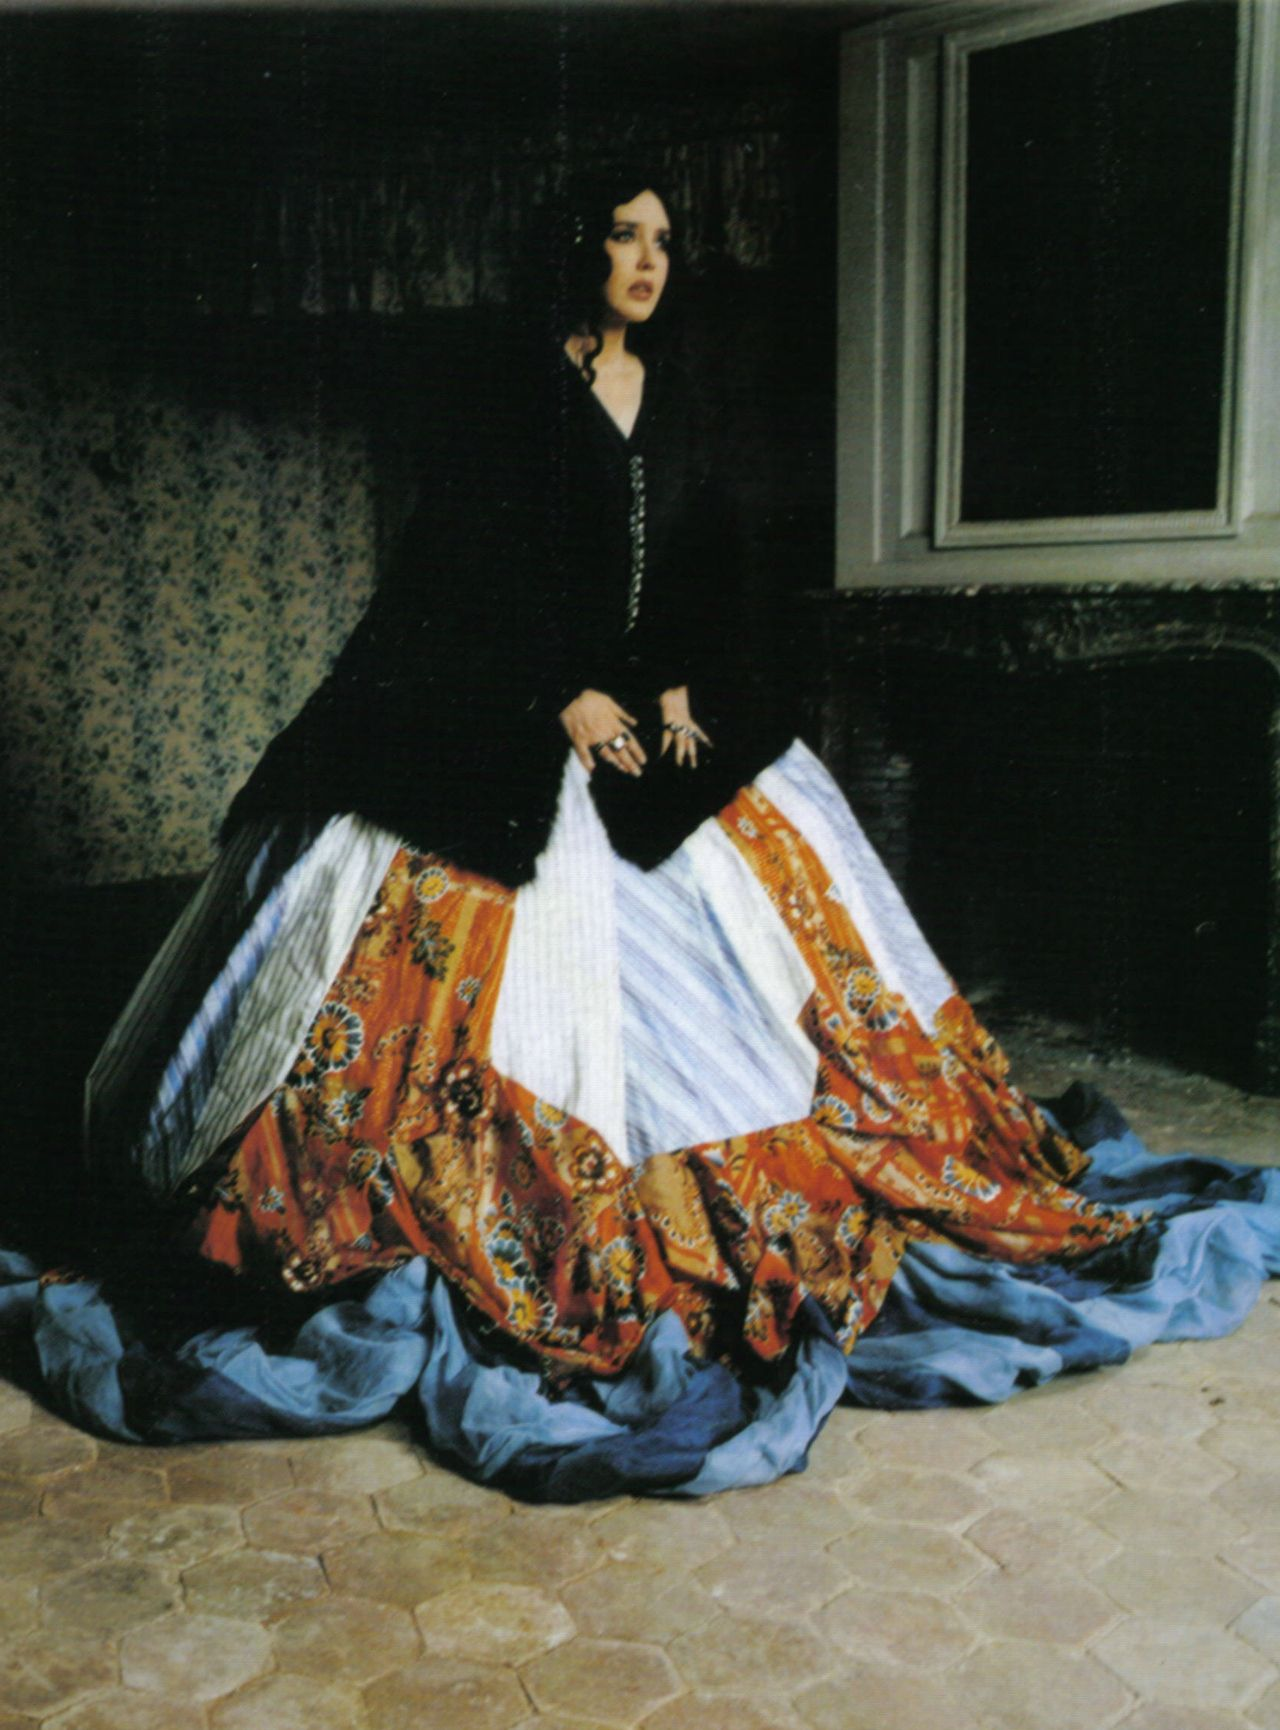 """Isabelle Adjani in 'I. Adjani!' Photographer: Deborah Turbeville Skirt: John Galliano F/W 2004/05 Vogue Italia September 2004 """